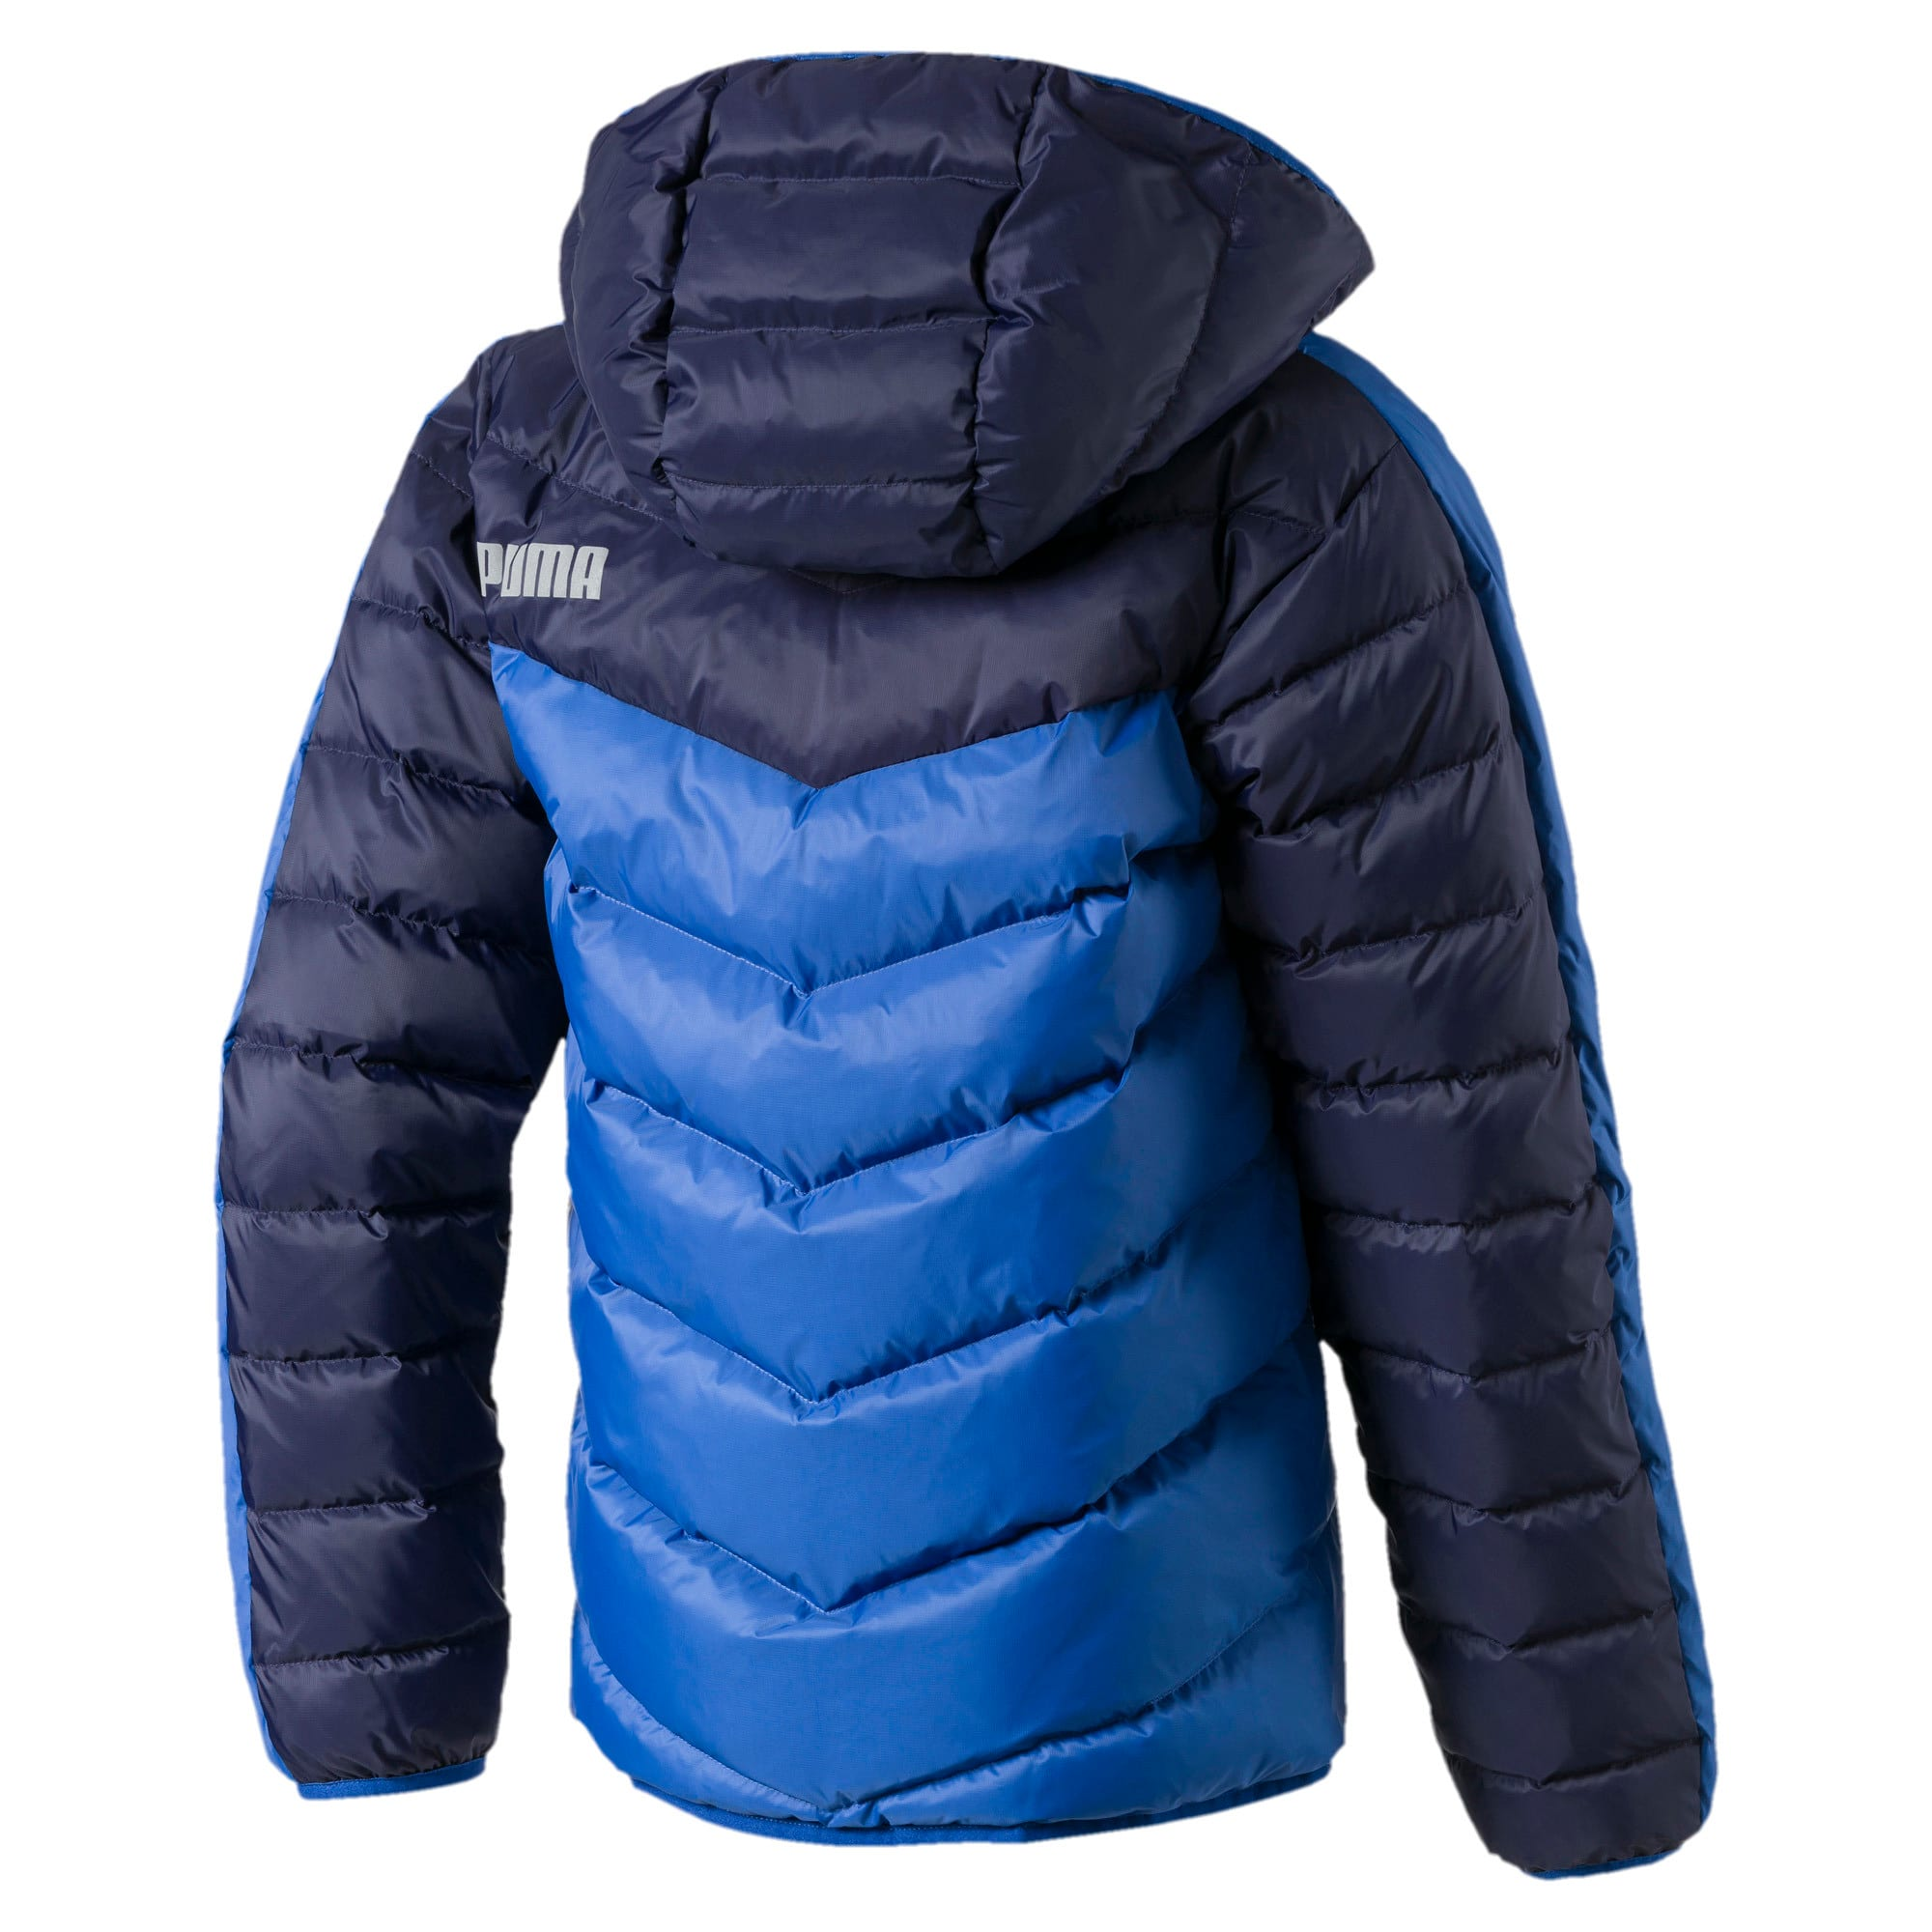 Thumbnail 2 of Active Jungen Jacke, Galaxy Blue-Peacoat, medium